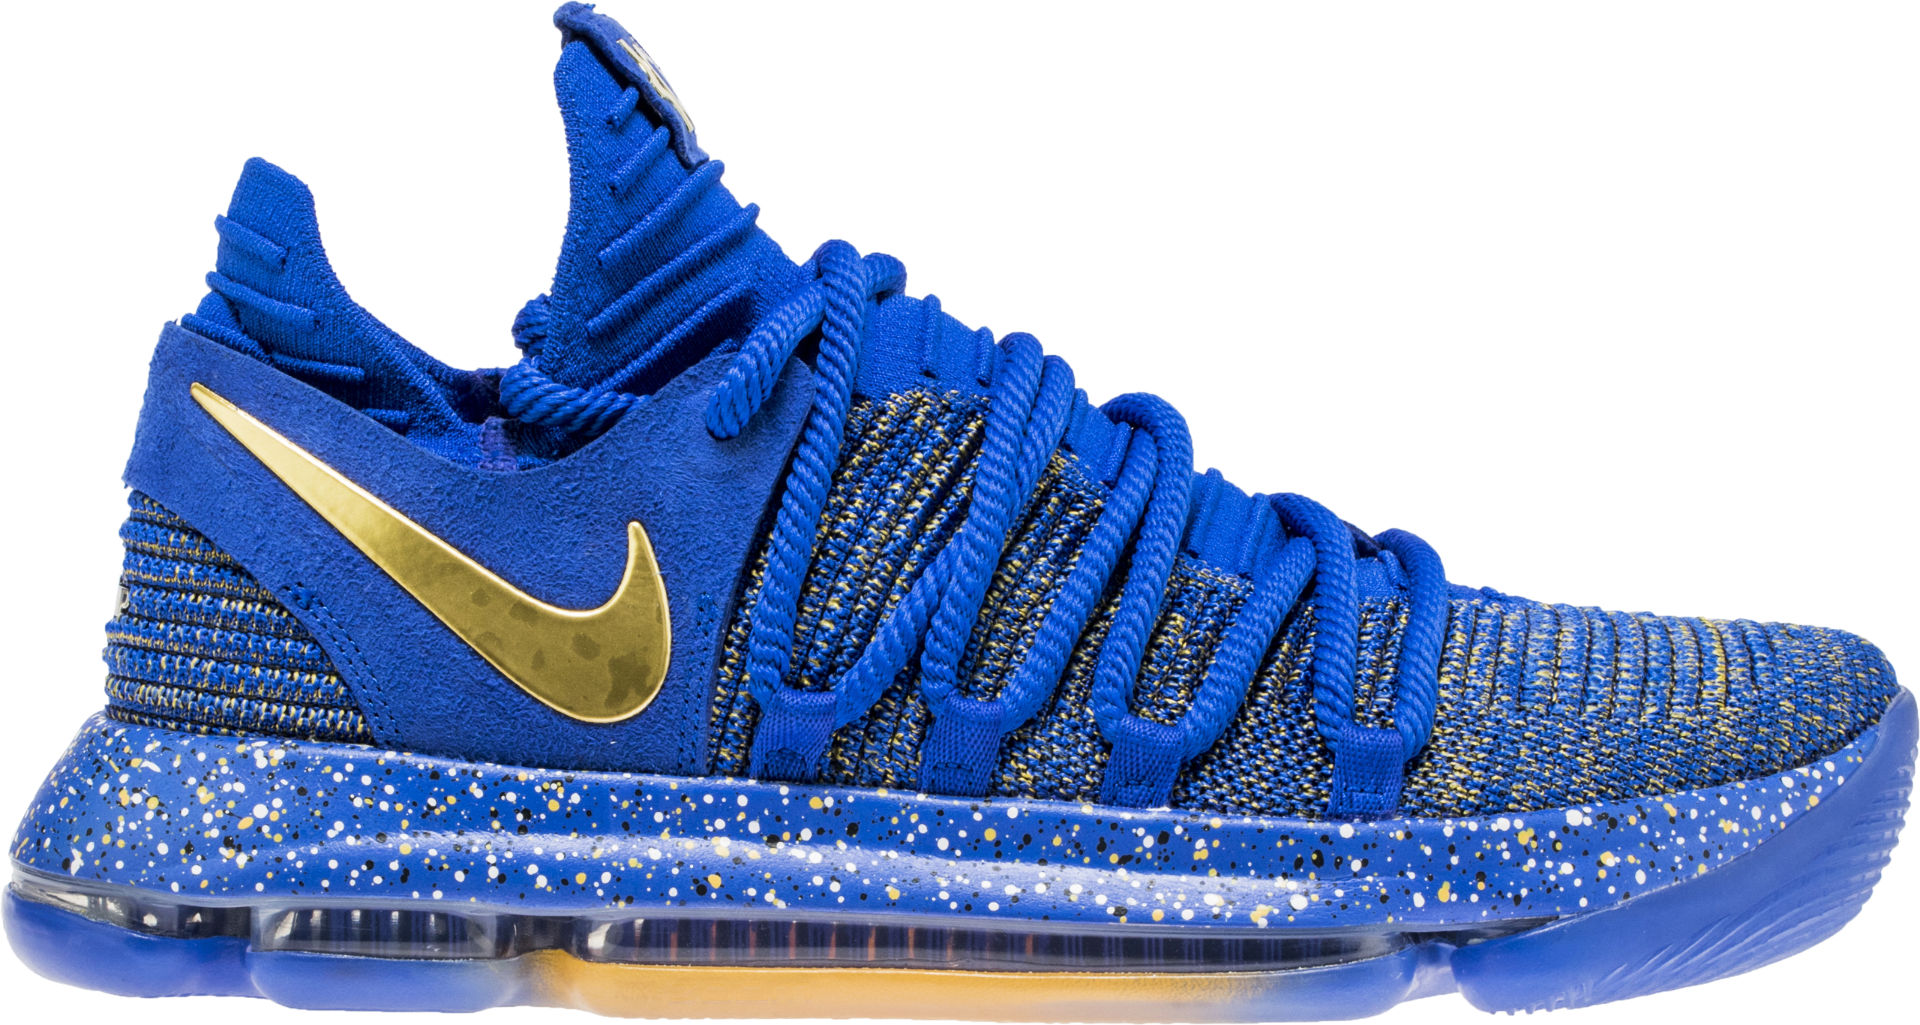 kd10 Archives - WearTesters